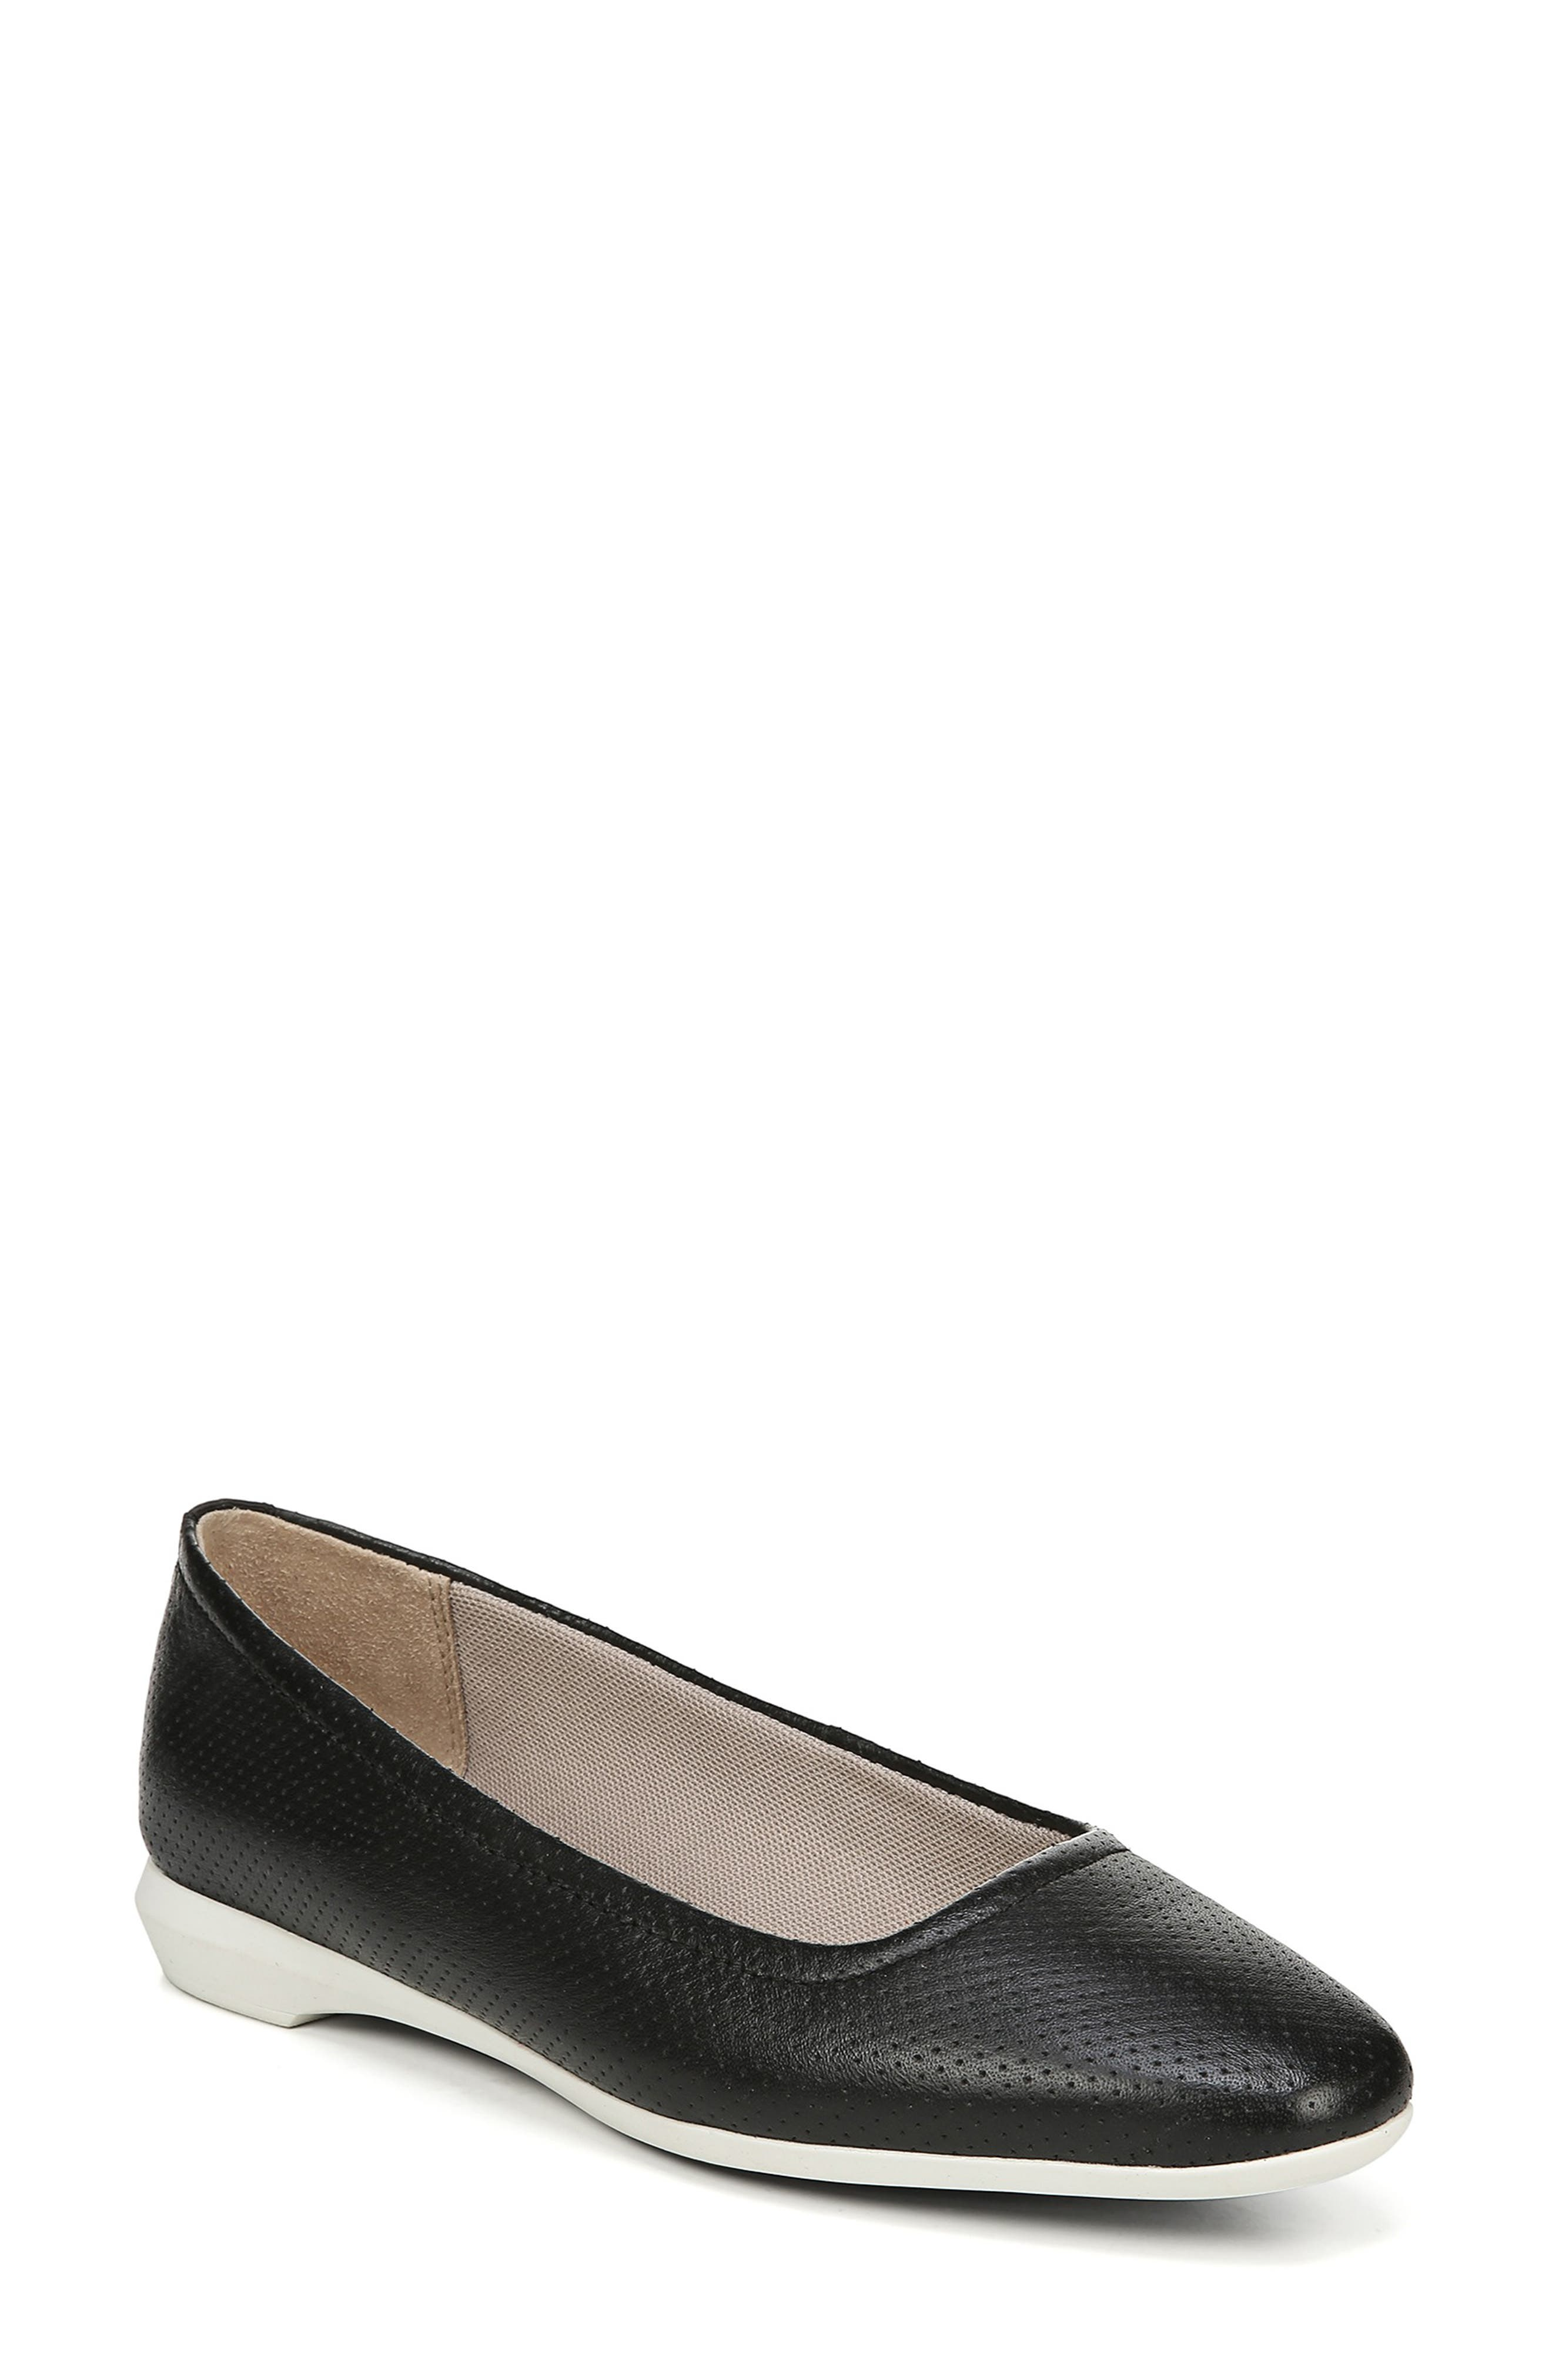 Naturalizer Alya Flat- Black